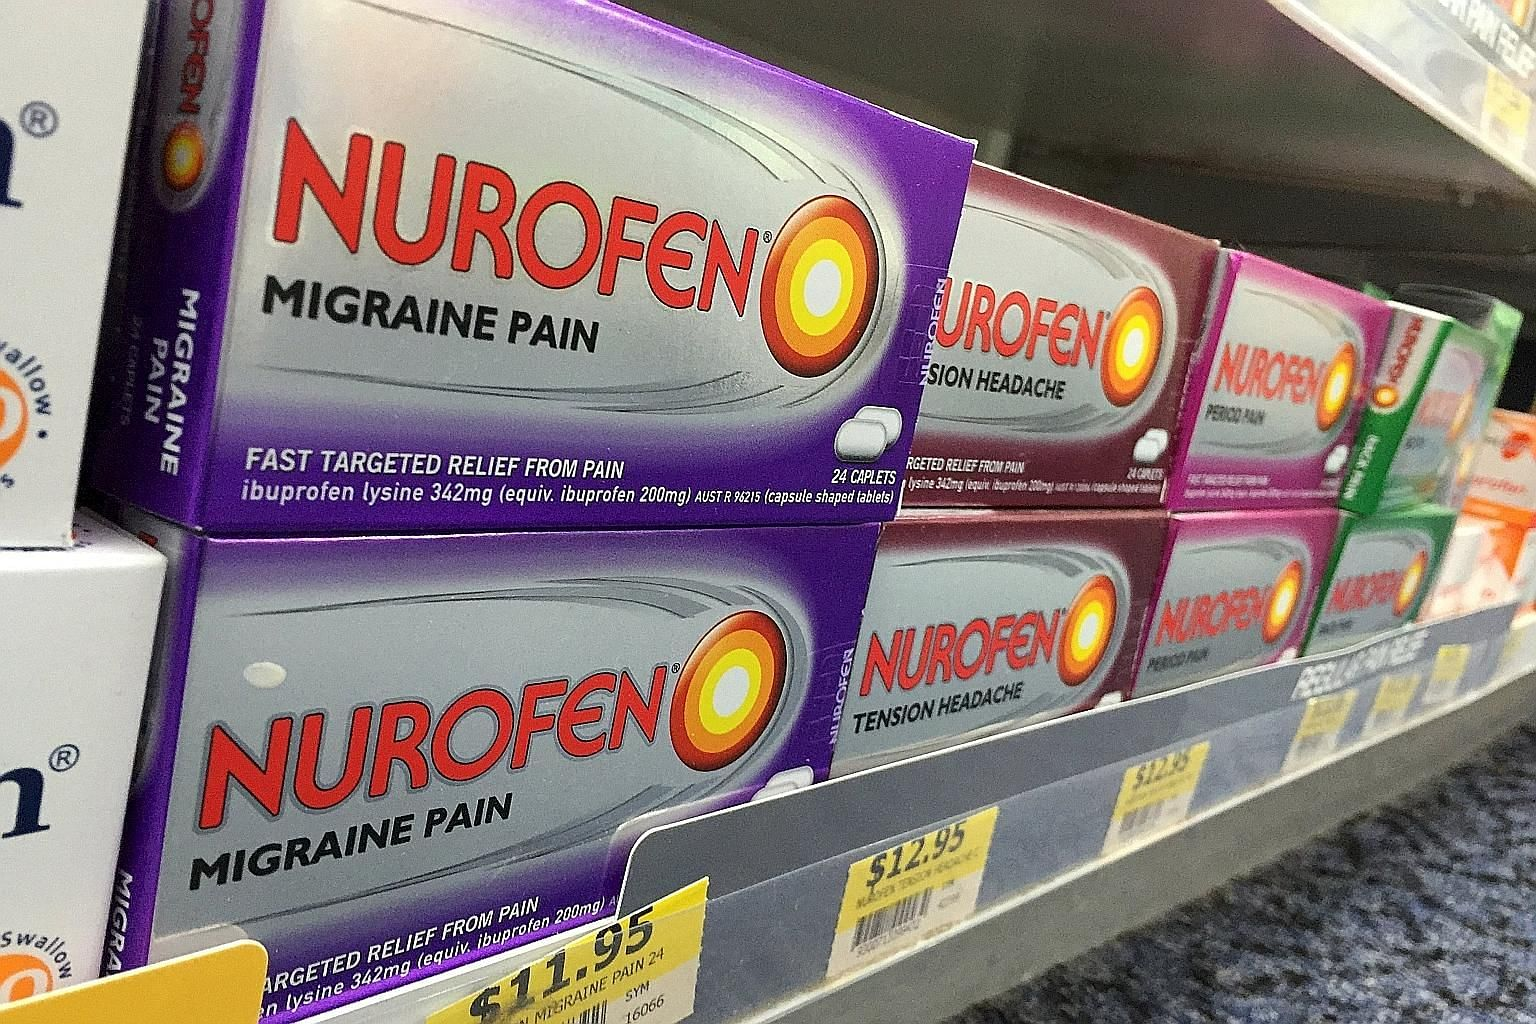 Reckitt Benckiser has been ordered to pull some of its Nurofen pain relief products from the Australian market after the Federal Court found its claims were misleading.